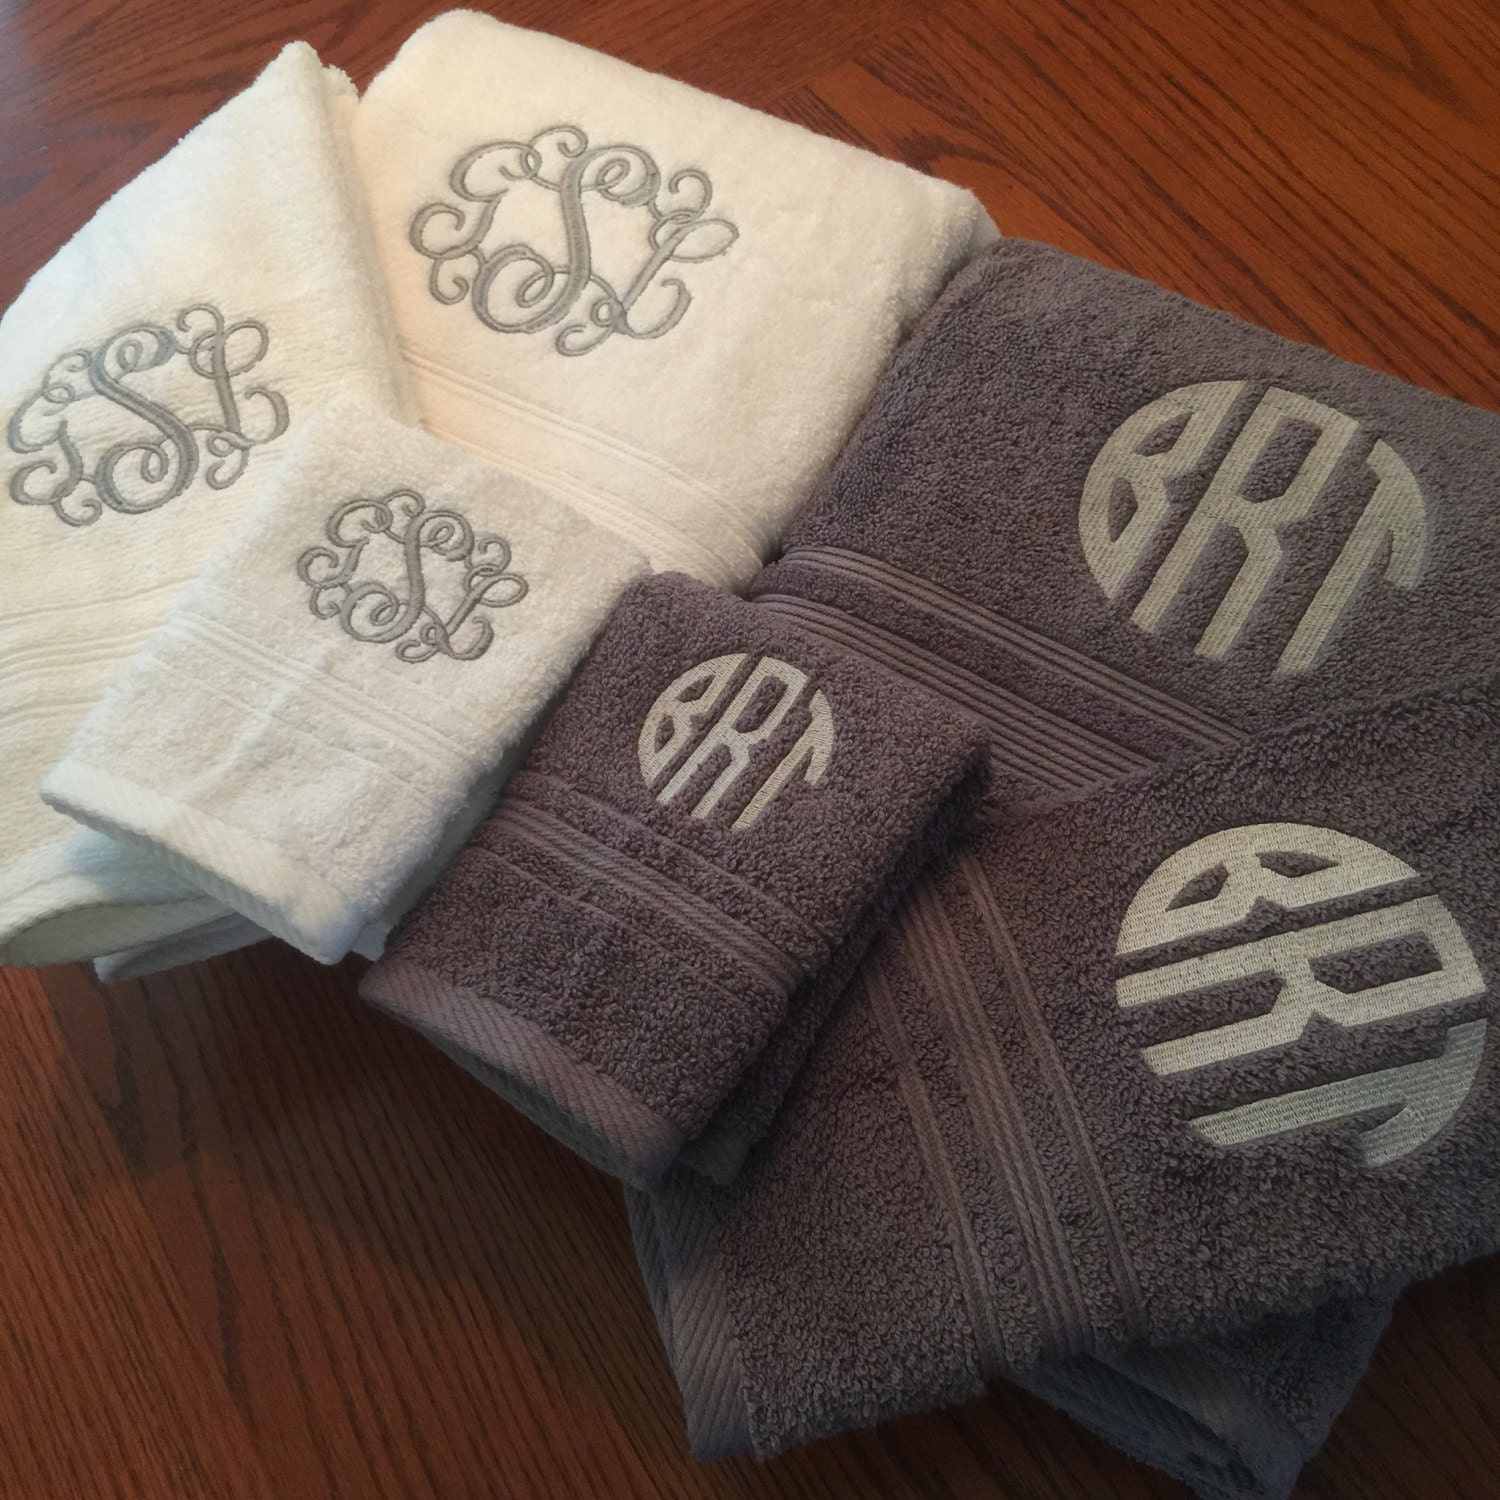 Monogram Towels For Bathroom: Monogrammed Towel Set Monogrammed/embroidered Bath By